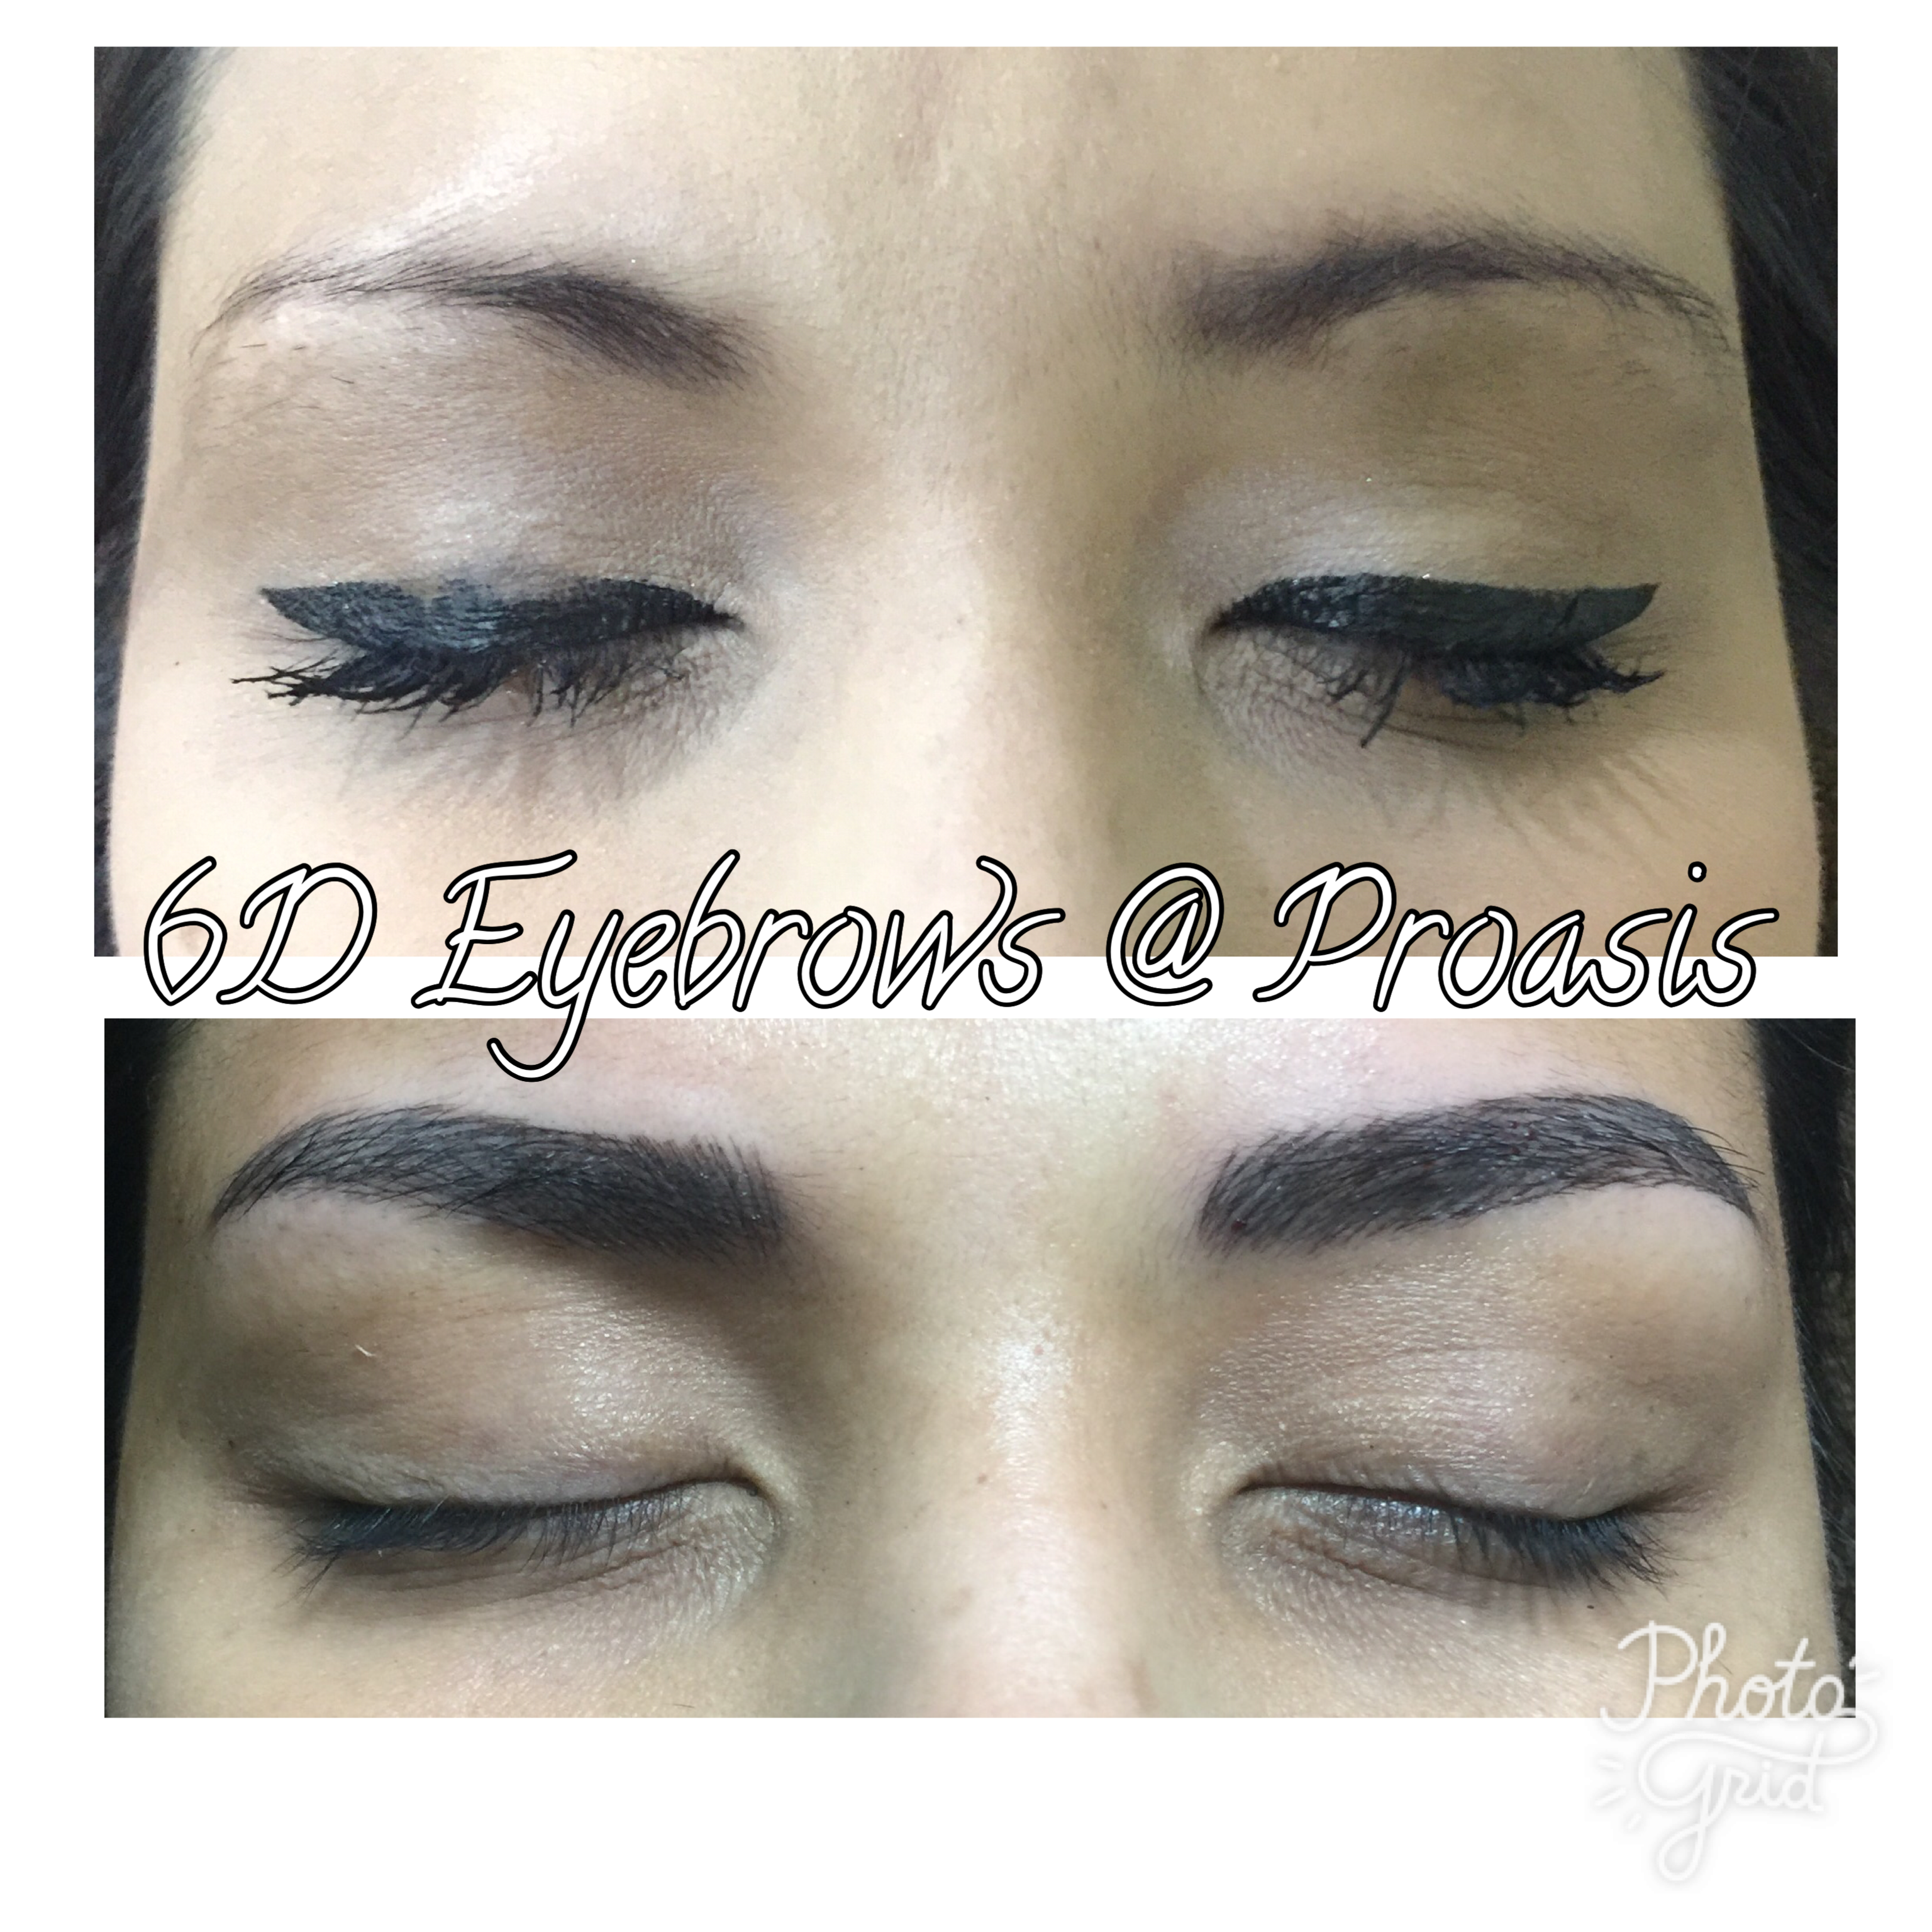 Pin By Proasis Beauty Loft On Eyebrows Eyebrow Embroidery